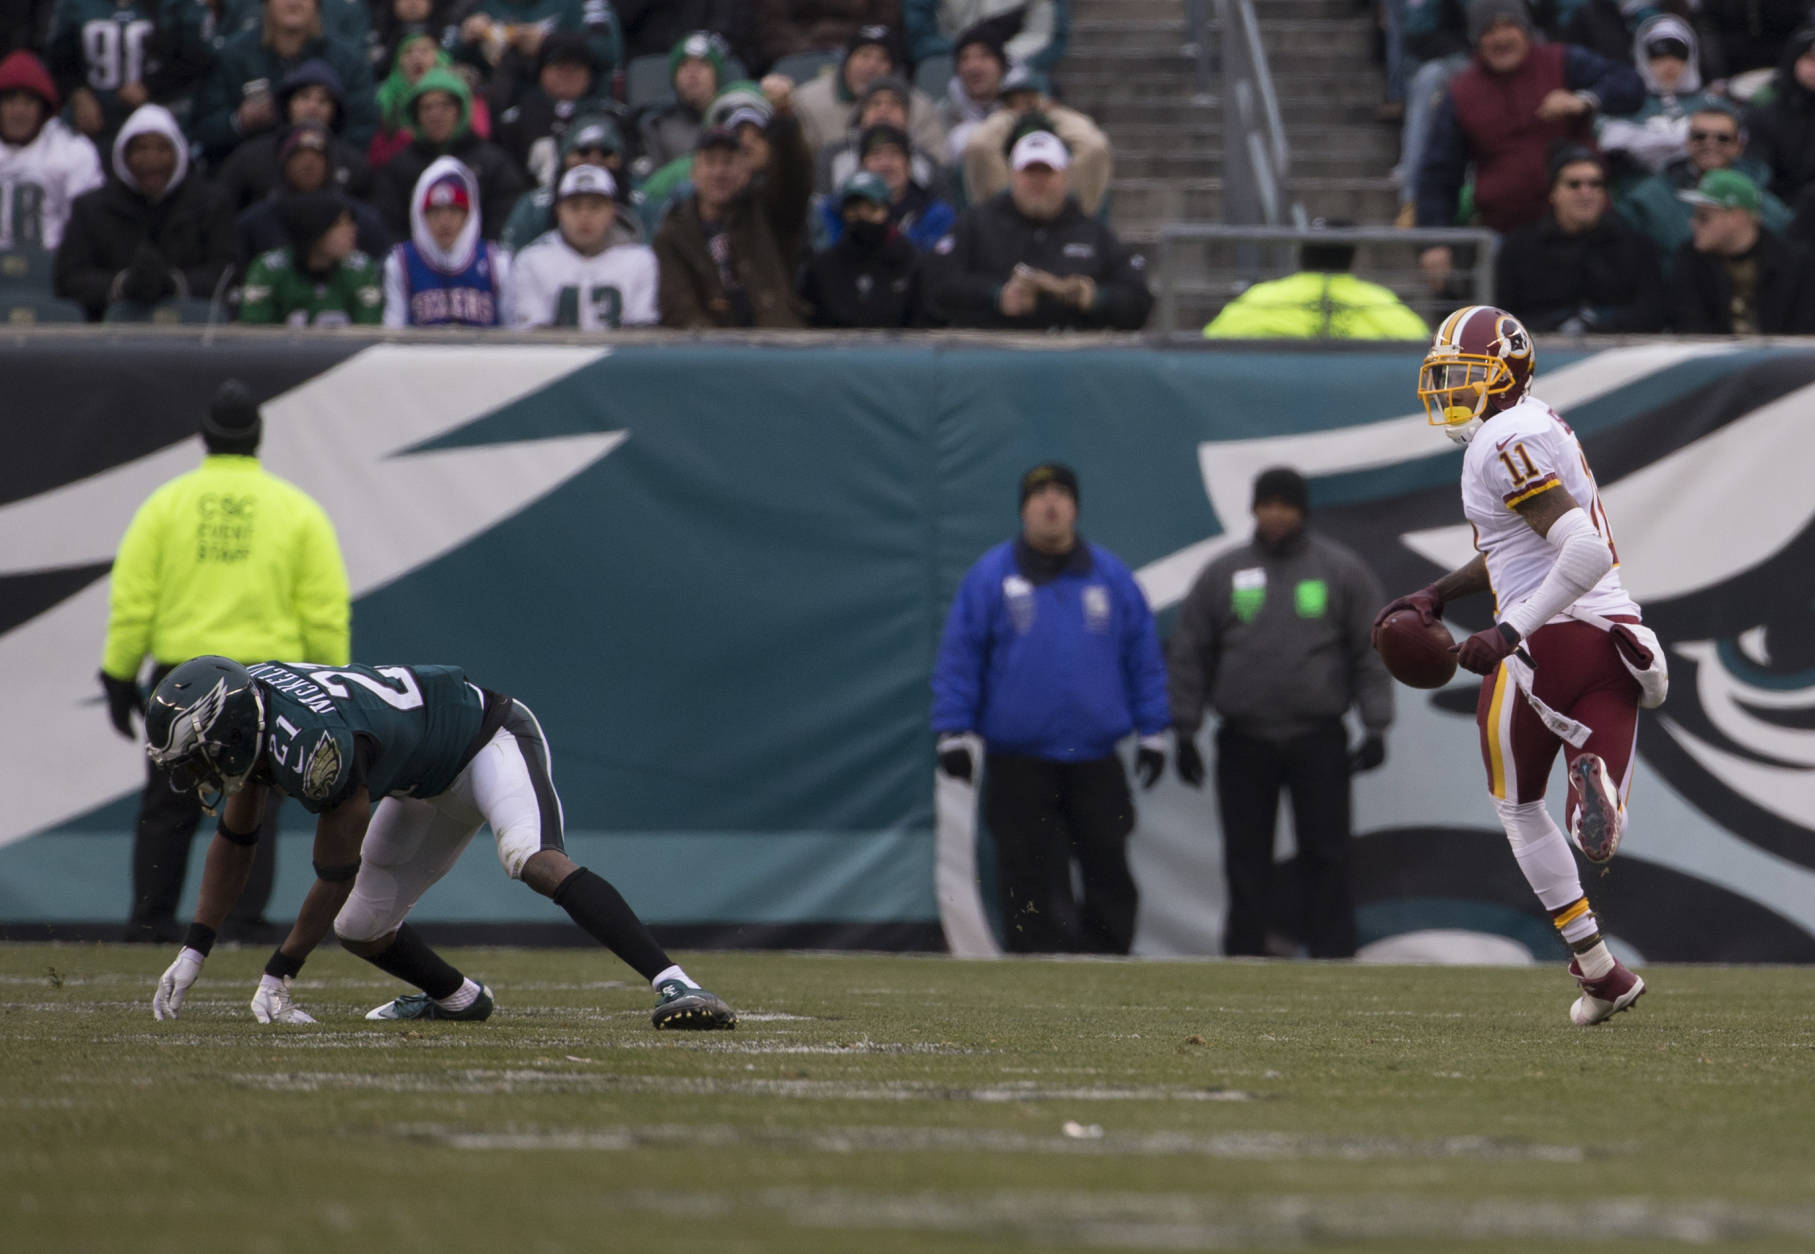 PHILADELPHIA, PA - DECEMBER 11: DeSean Jackson #11 of the Washington Redskins runs past Leodis McKelvin #21 of the Philadelphia Eagles to score a touchdown in the third quarter at Lincoln Financial Field on December 11, 2016 in Philadelphia, Pennsylvania. The Redskins defeated the Eagles 27-22. (Photo by Mitchell Leff/Getty Images)